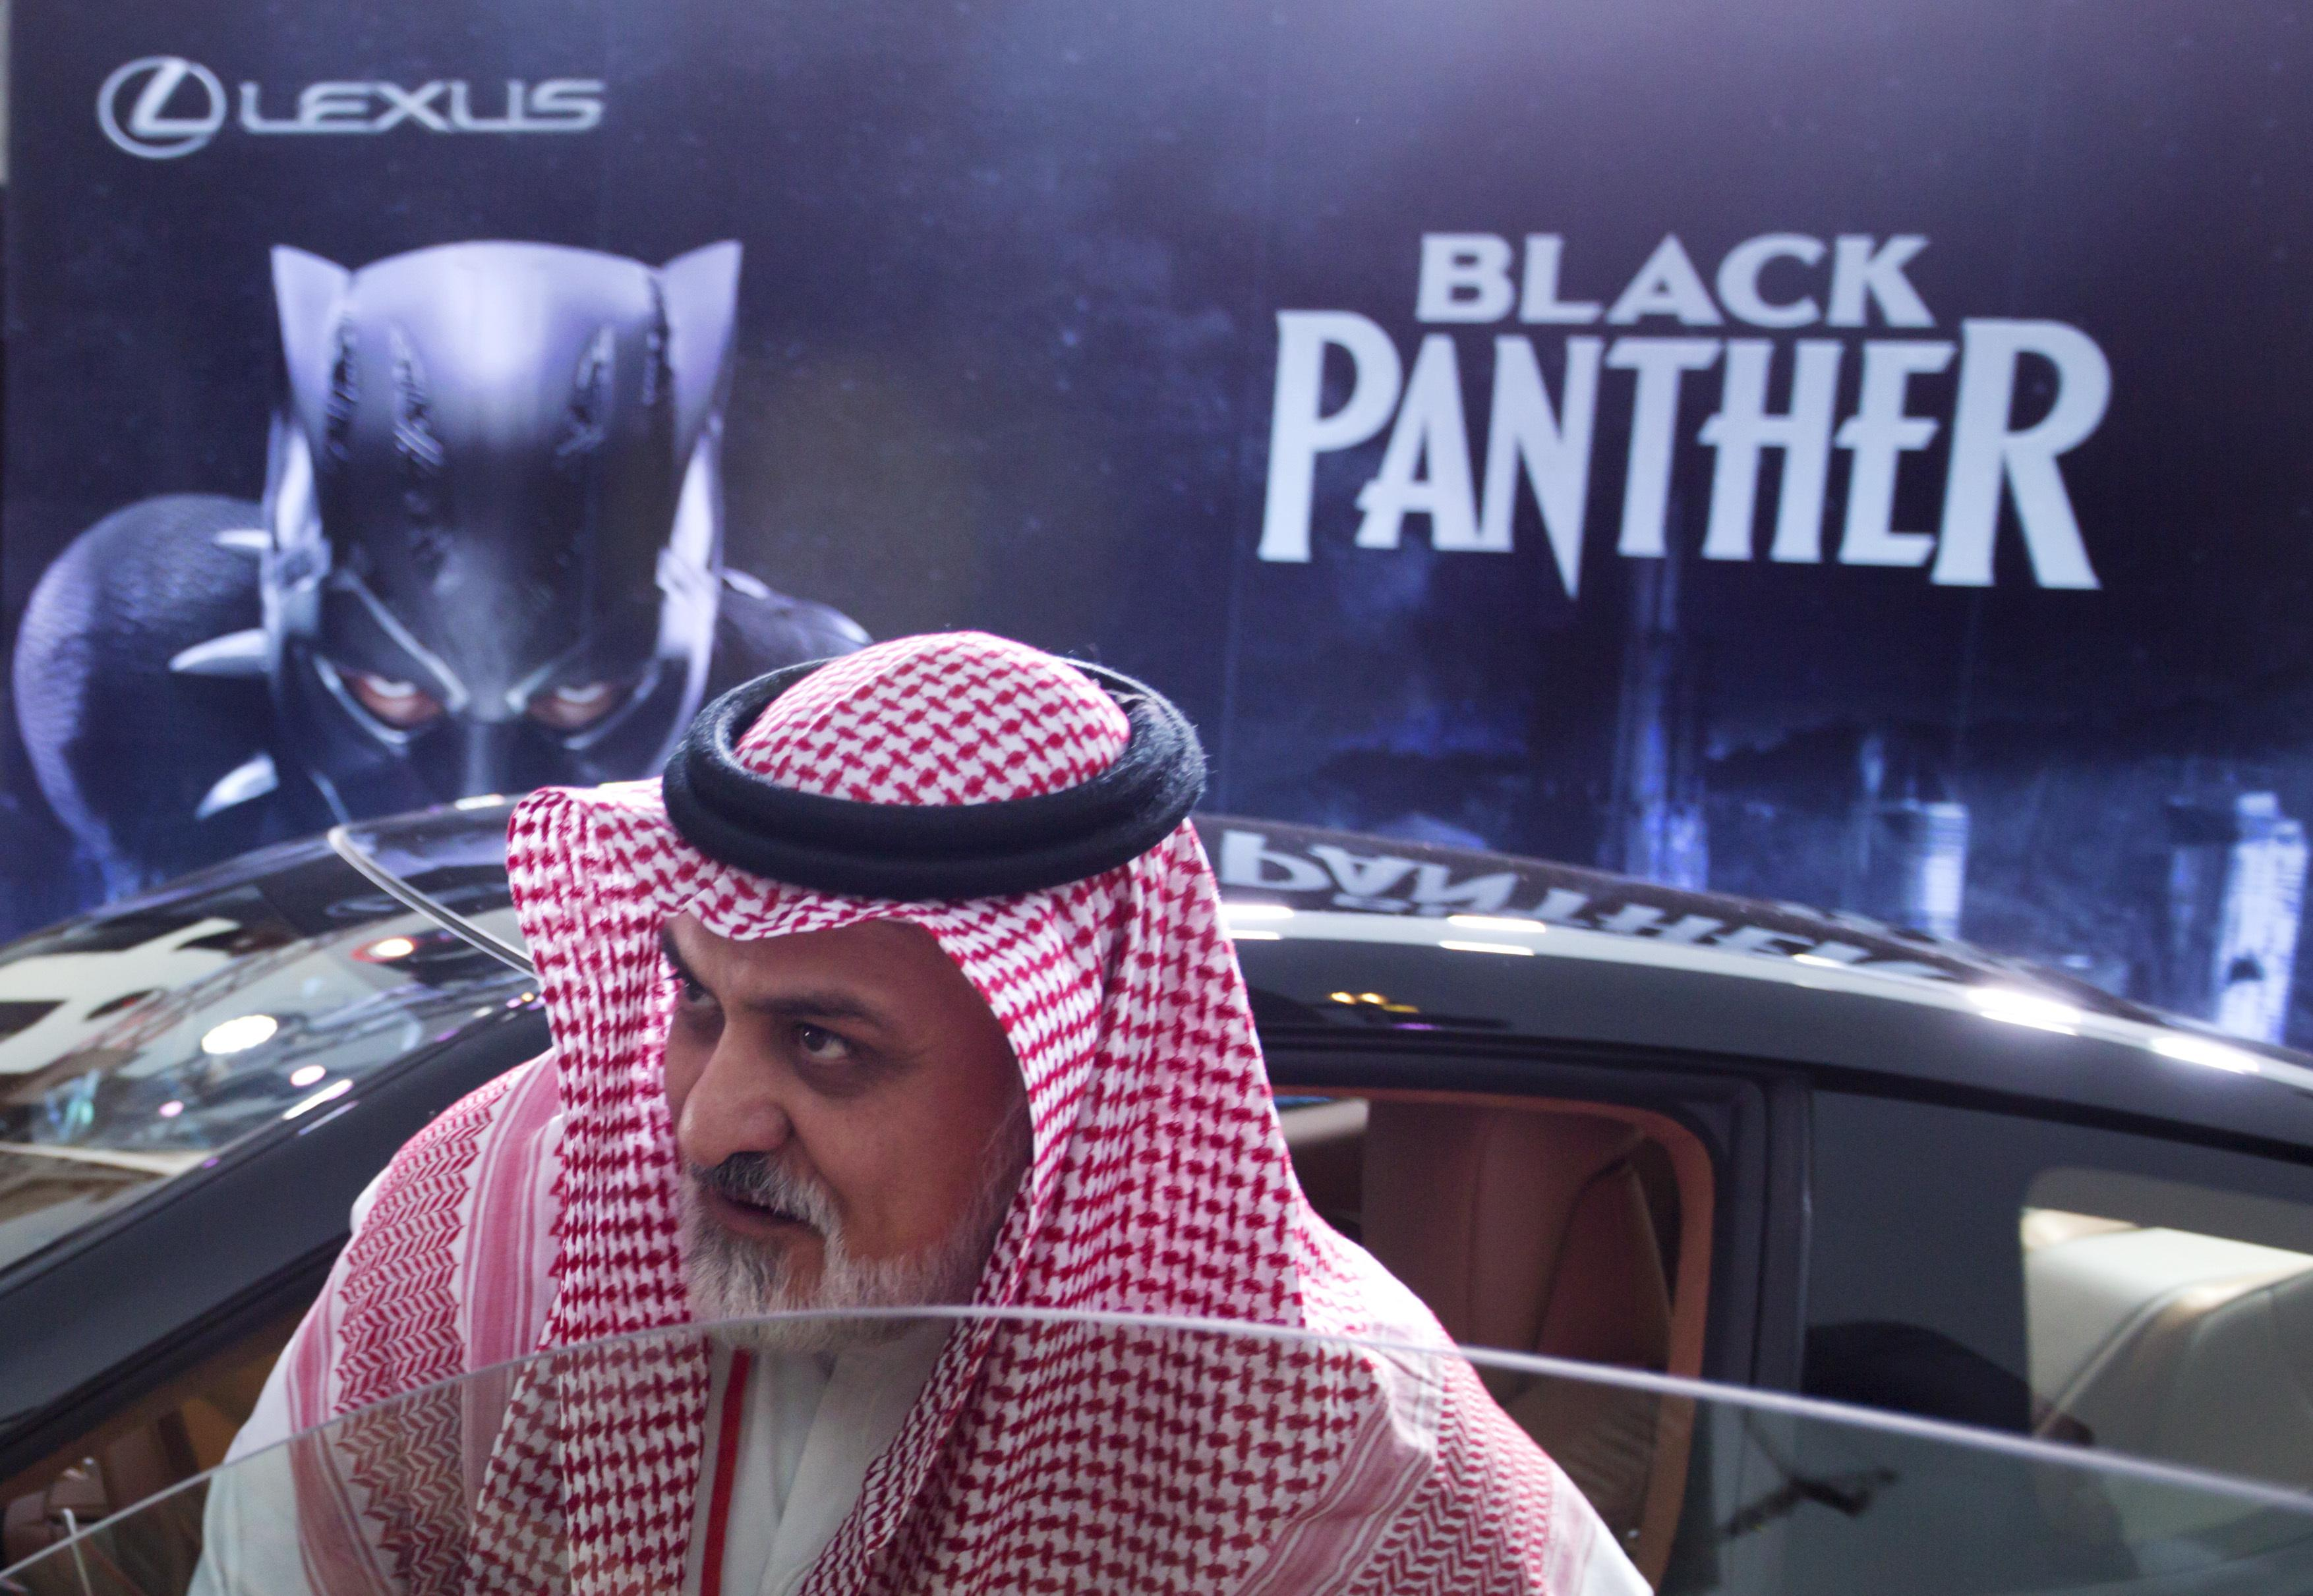 Saudi arabia screens black panther to mark cinema opening the a visitor checks out a lexus car similar to a one used in the black malvernweather Gallery